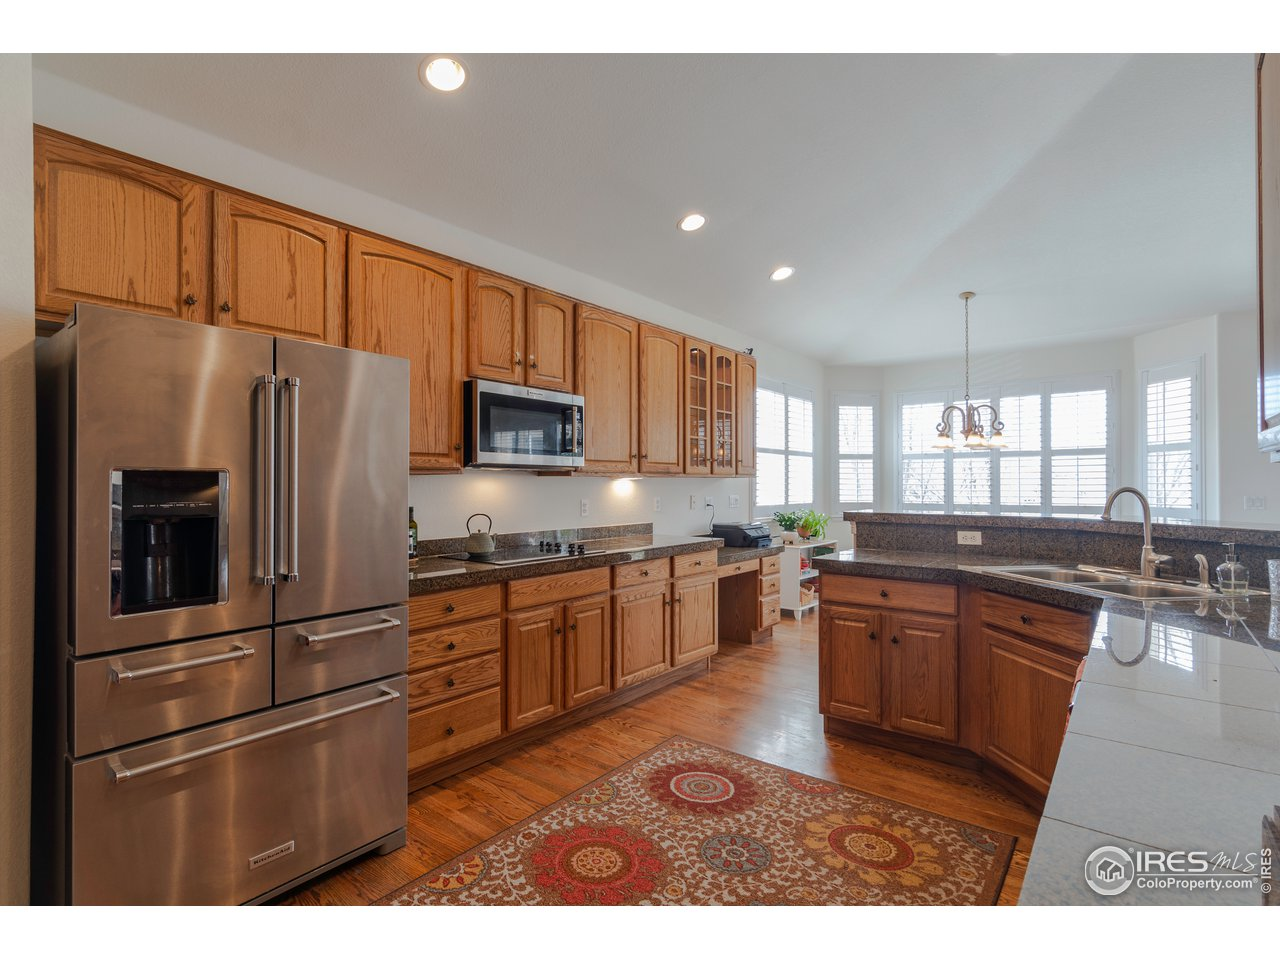 Chefs kitchen has so many cabinets, stainless appliances and great sized walk in pantry!